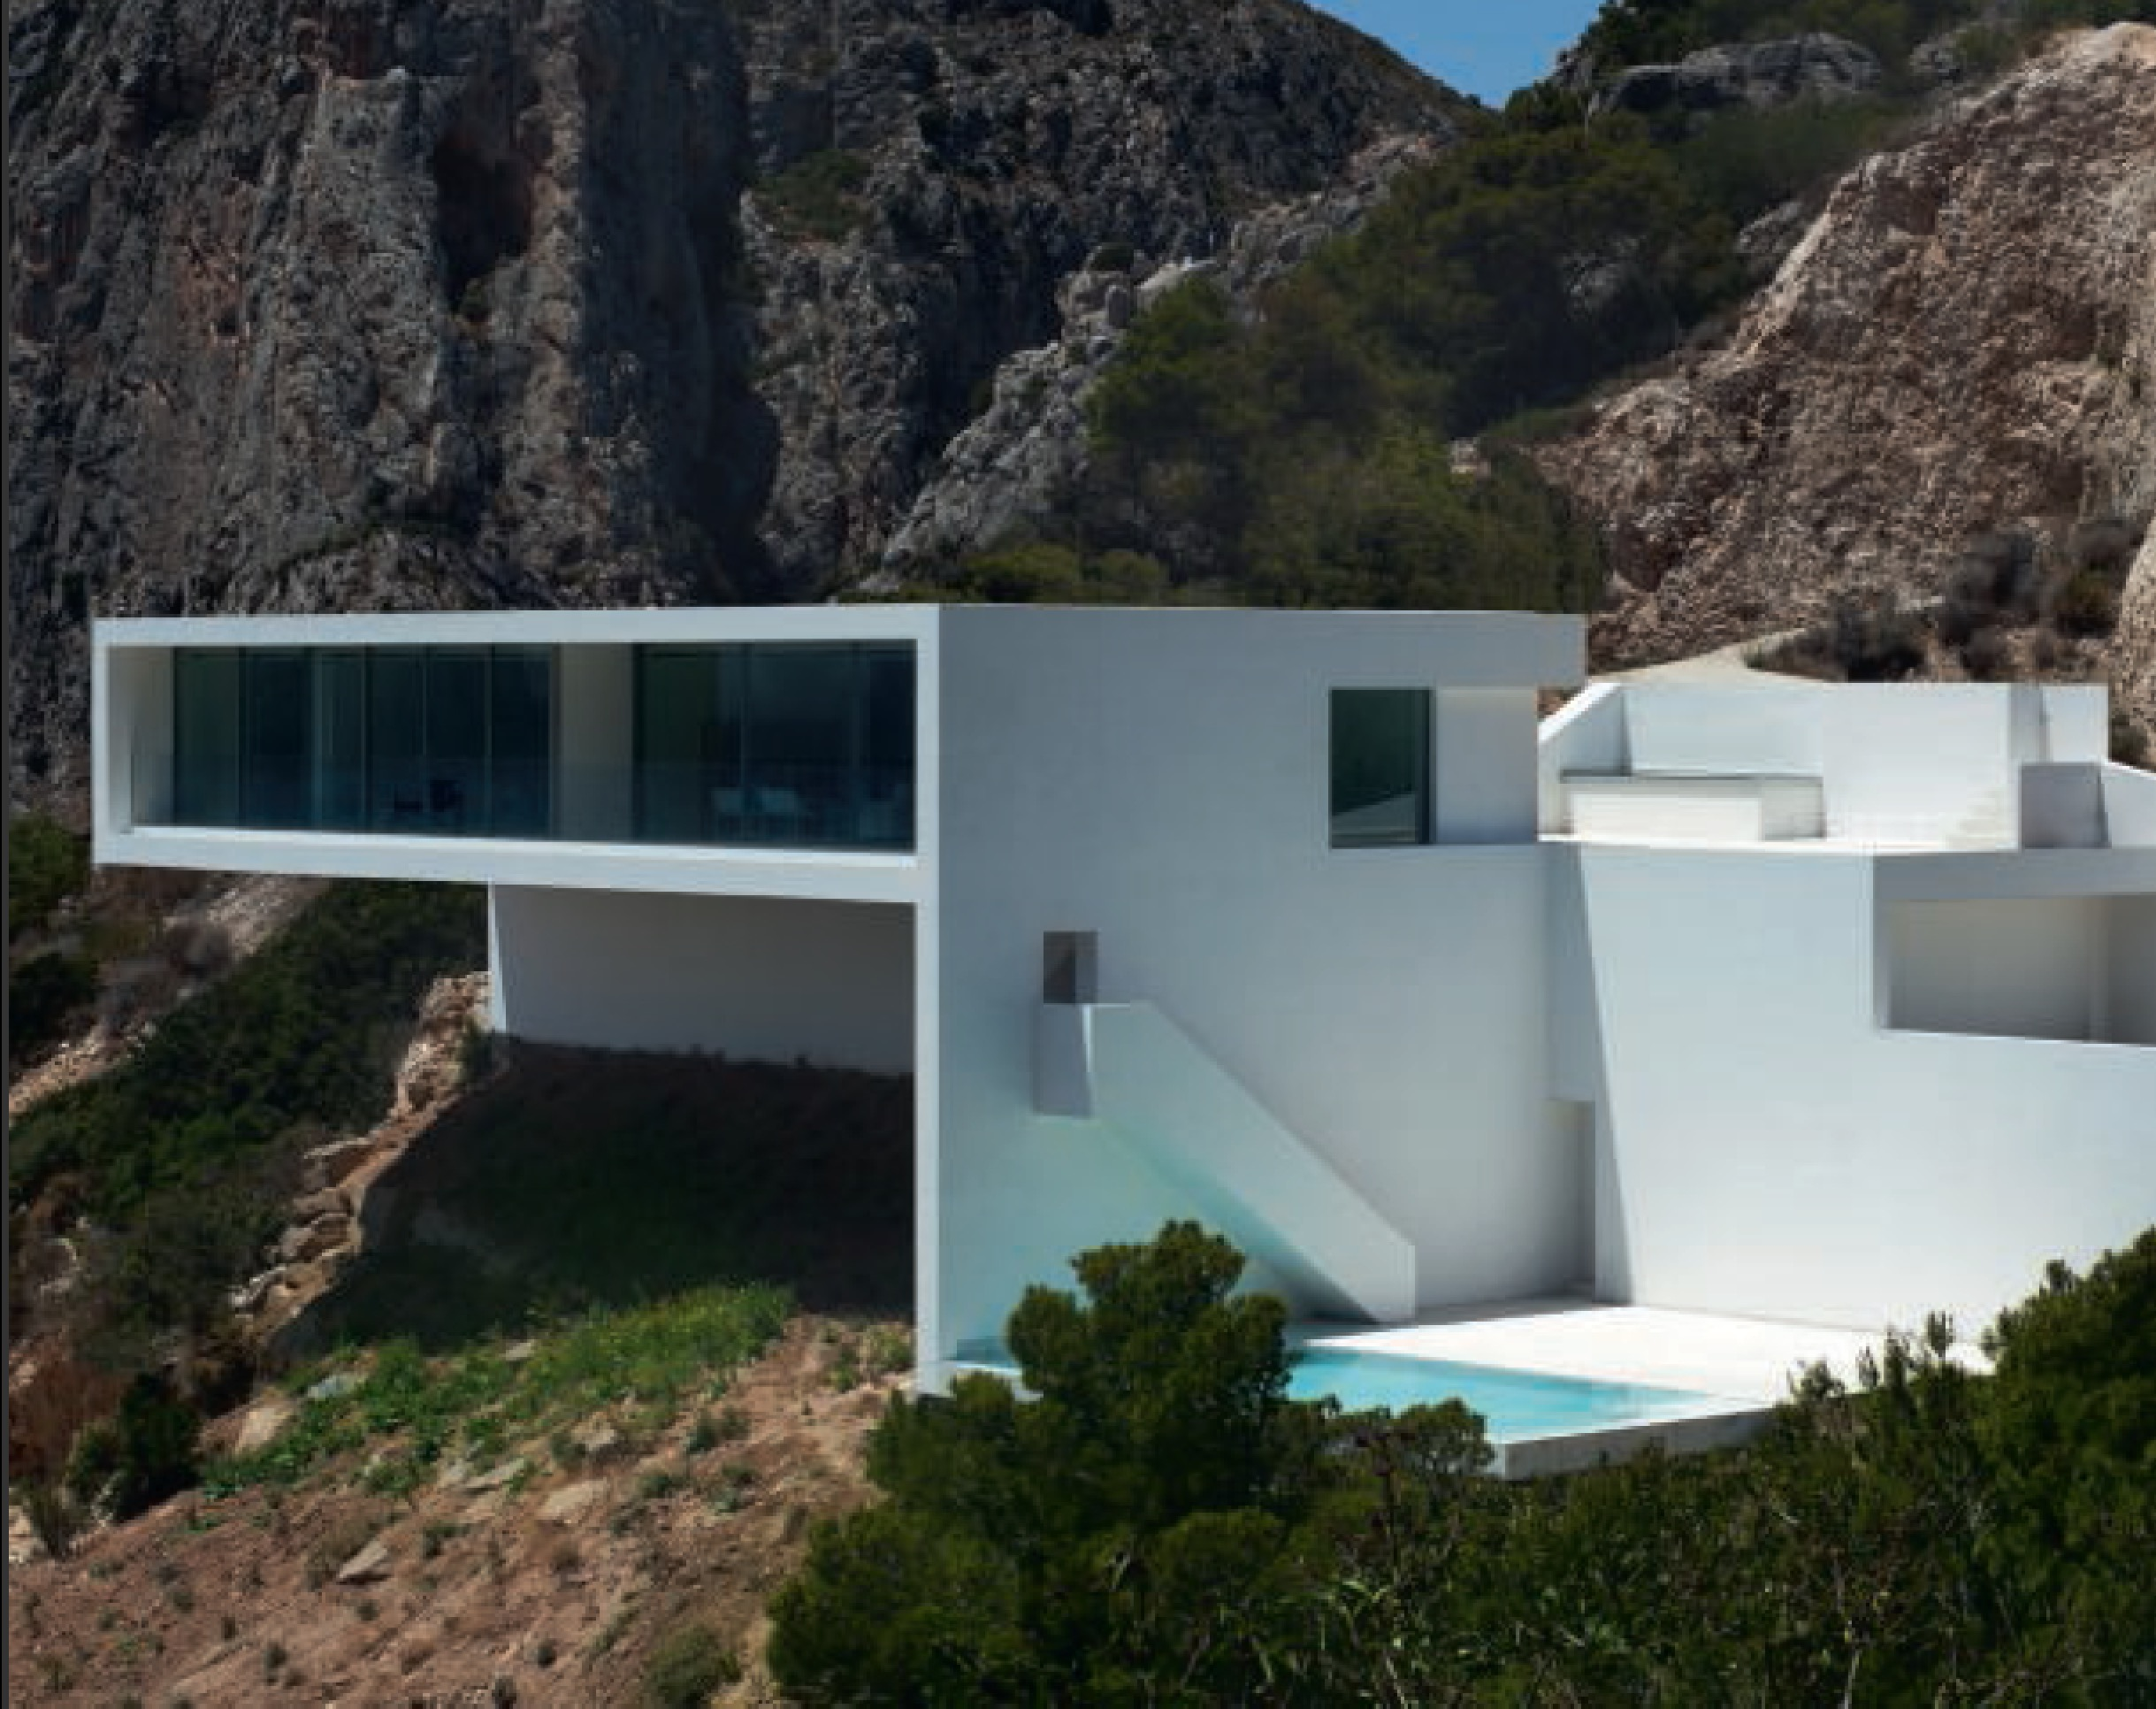 Fran Silvestre on how to build an extraordinary house